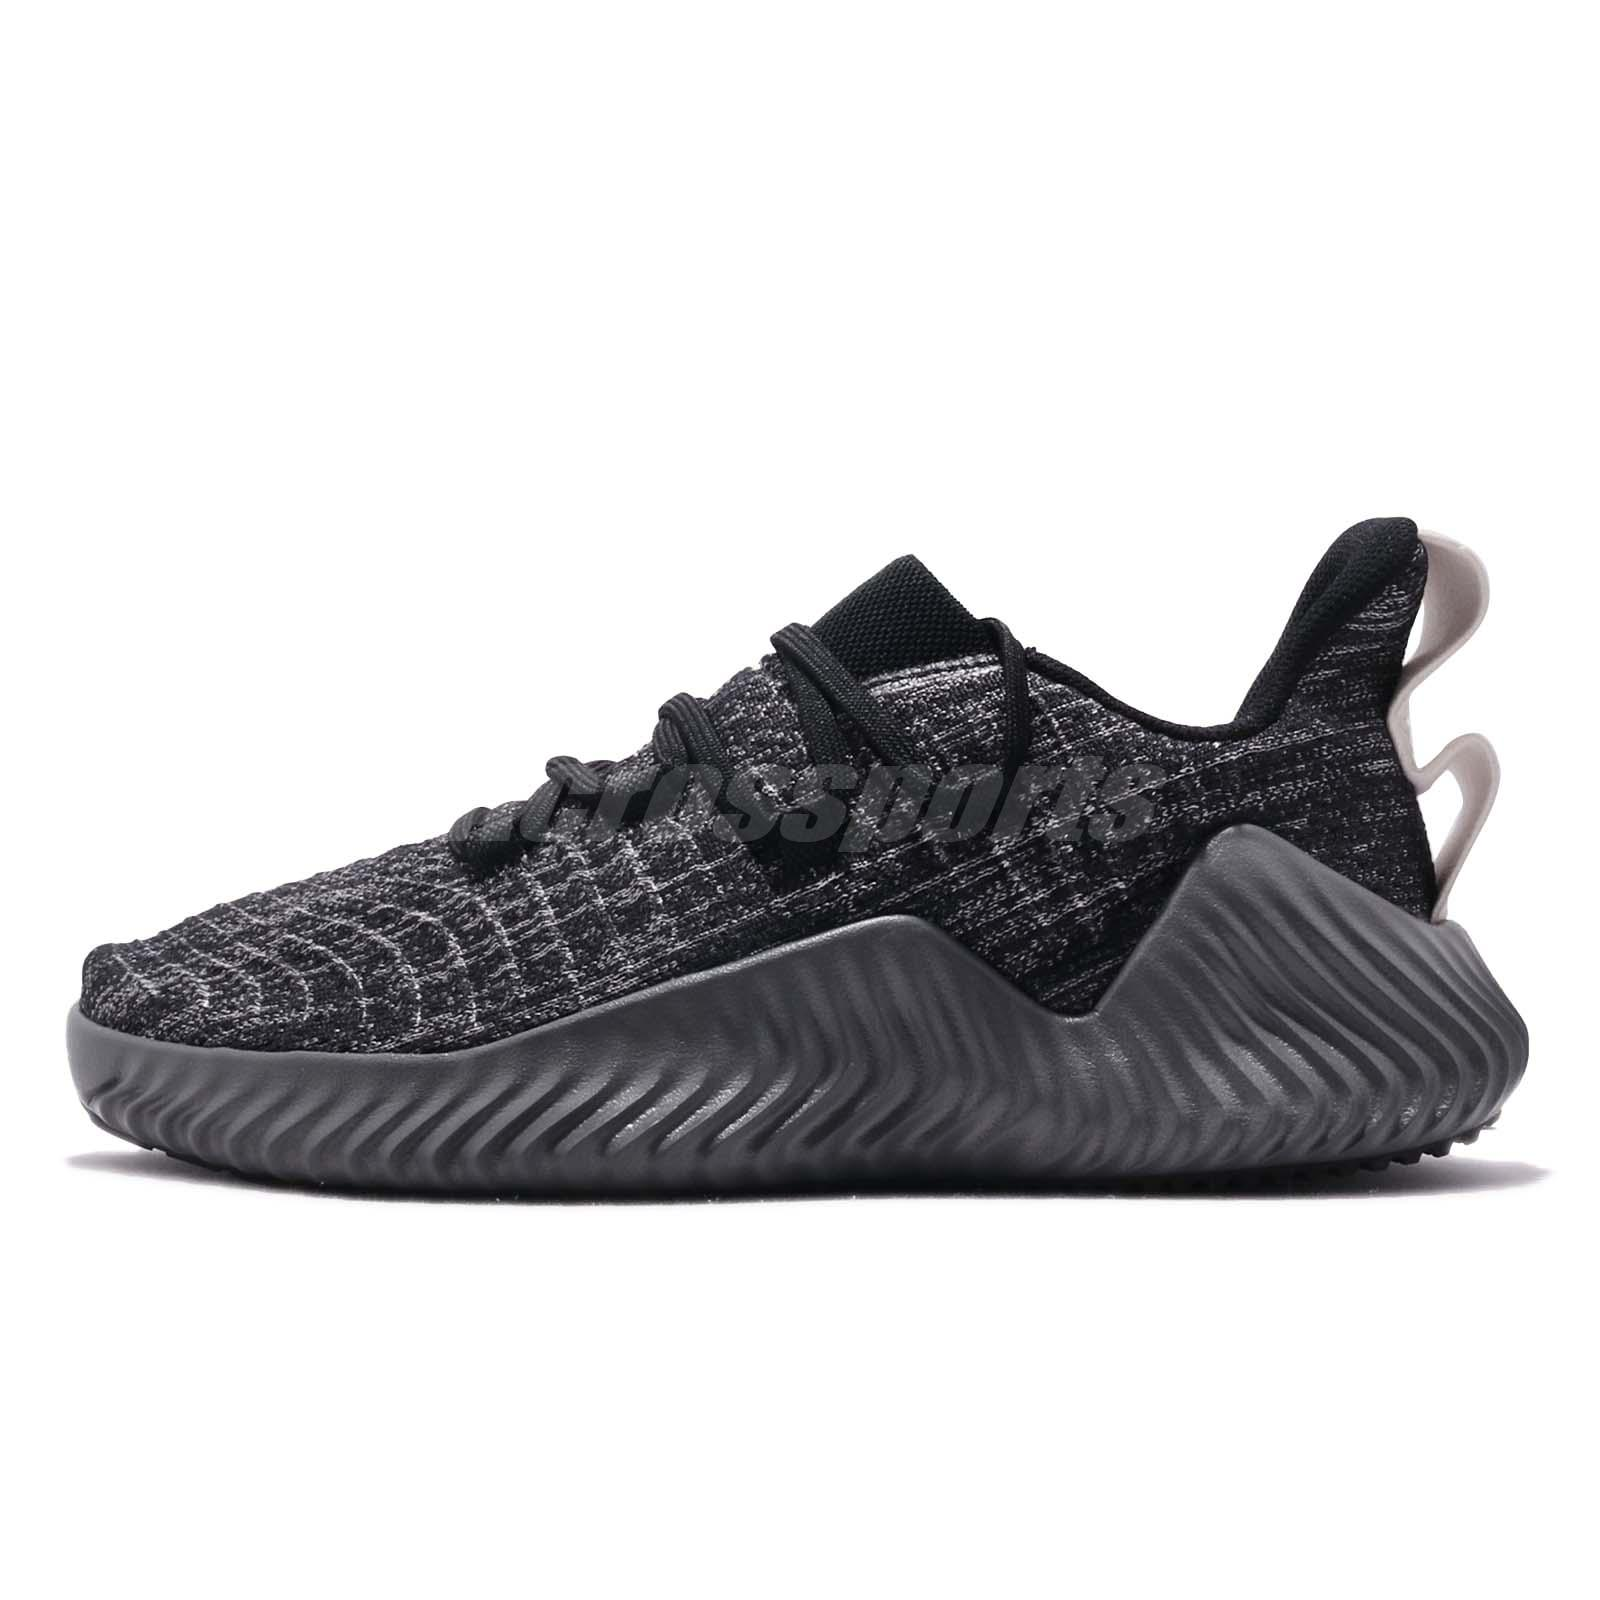 94d2990cfd8ae adidas Alphabounce Trainer Black Grey Raw White Men Cross Training Shoes  BB9250